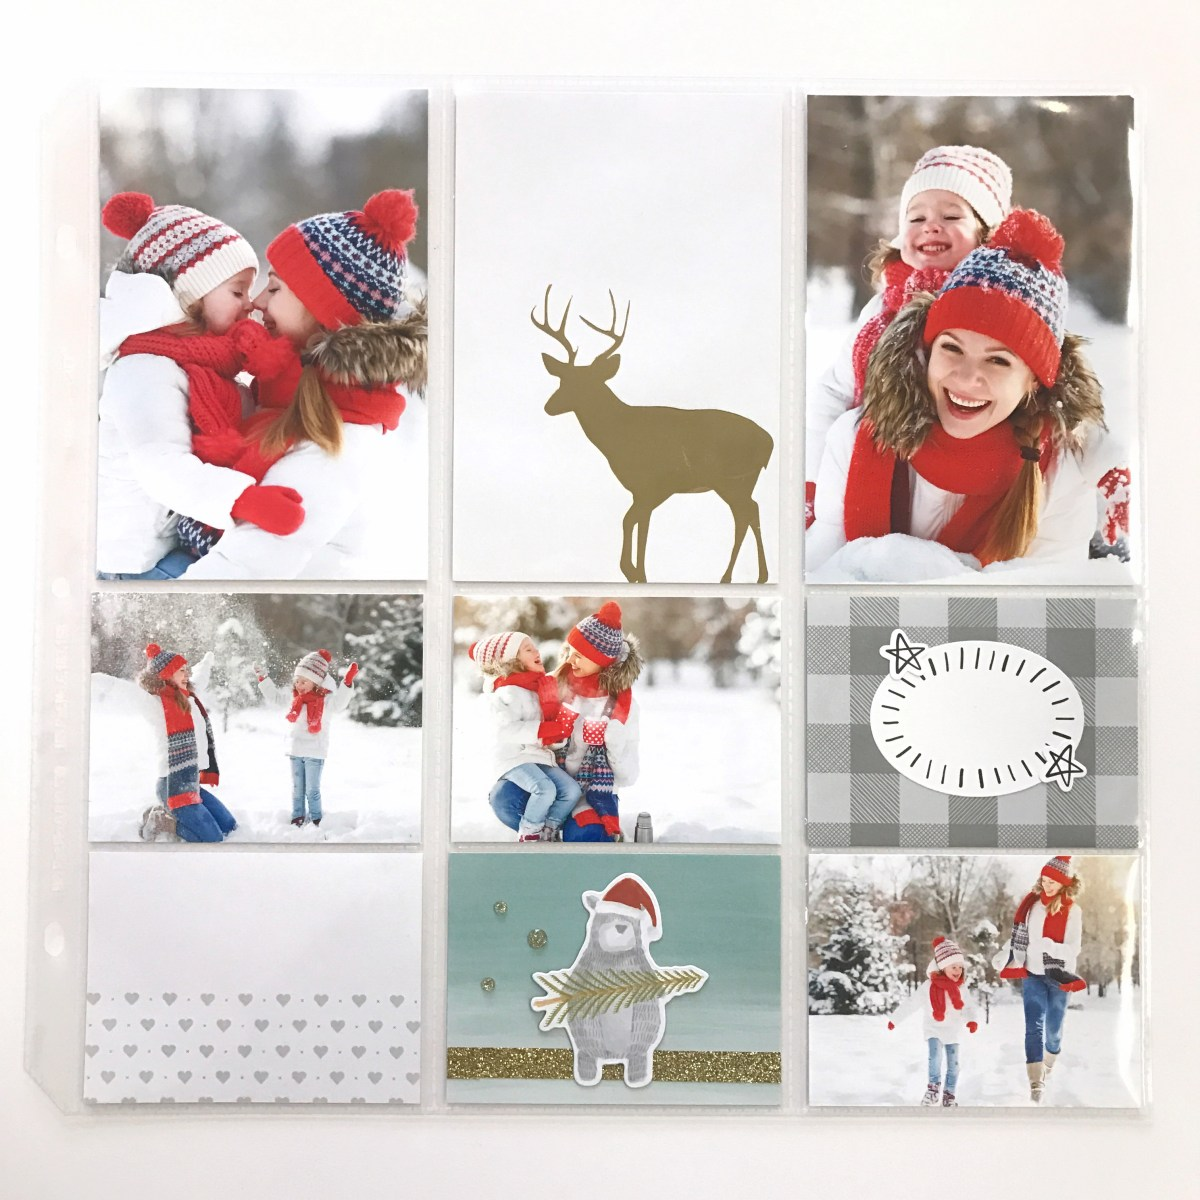 Holiday Memory Keeping #ctmh #closetomyheart #memory #keeping #pocket #plus #scrapbooking #scrapping #plan #ahead #holiday #christmas #december #story #snow #reindeer #gold #foil